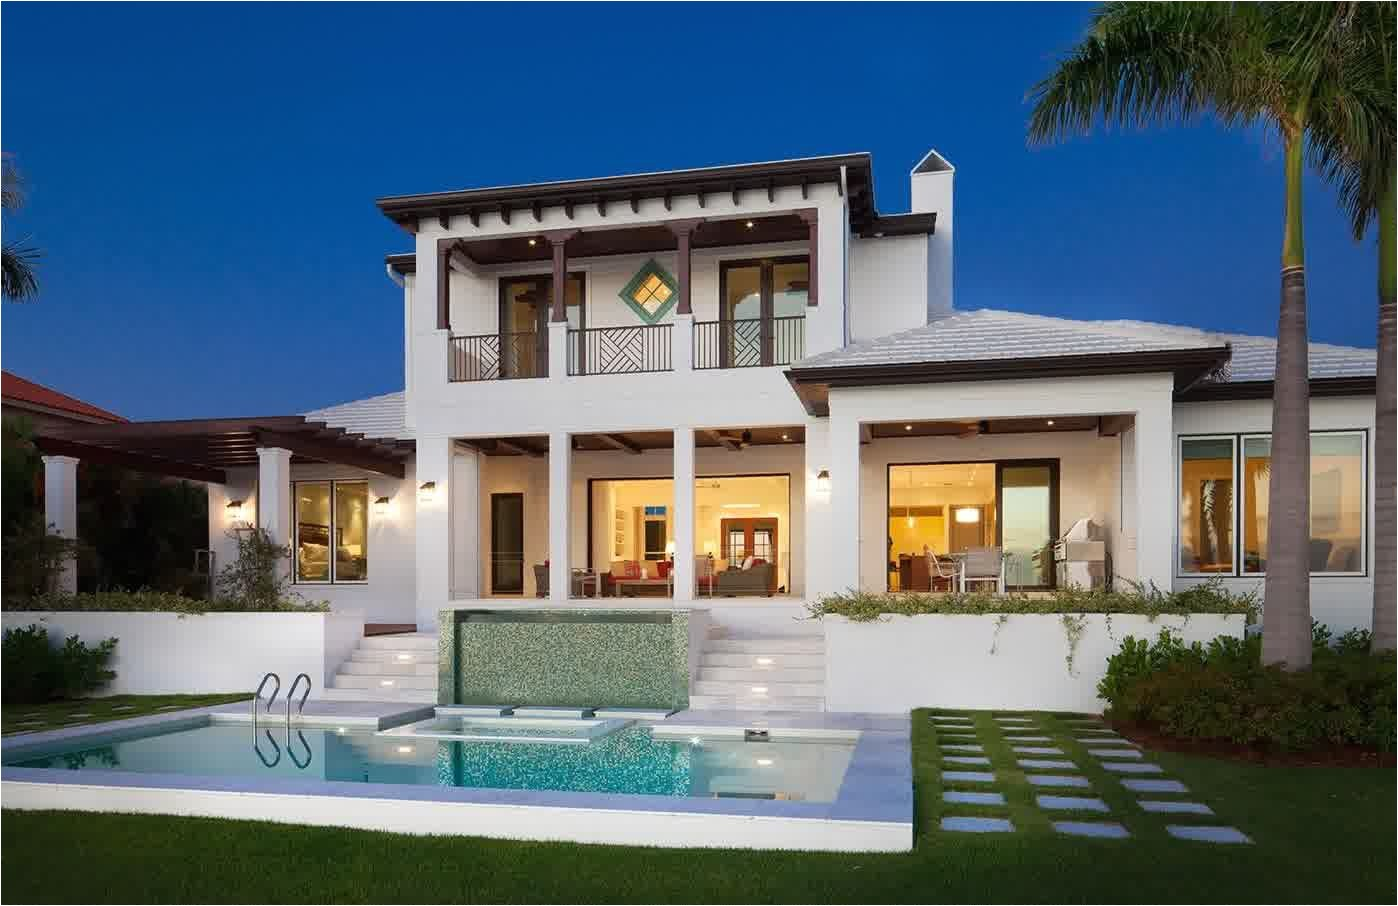 Tropical Homes Plans Beautiful Tropical House Design and Ideas